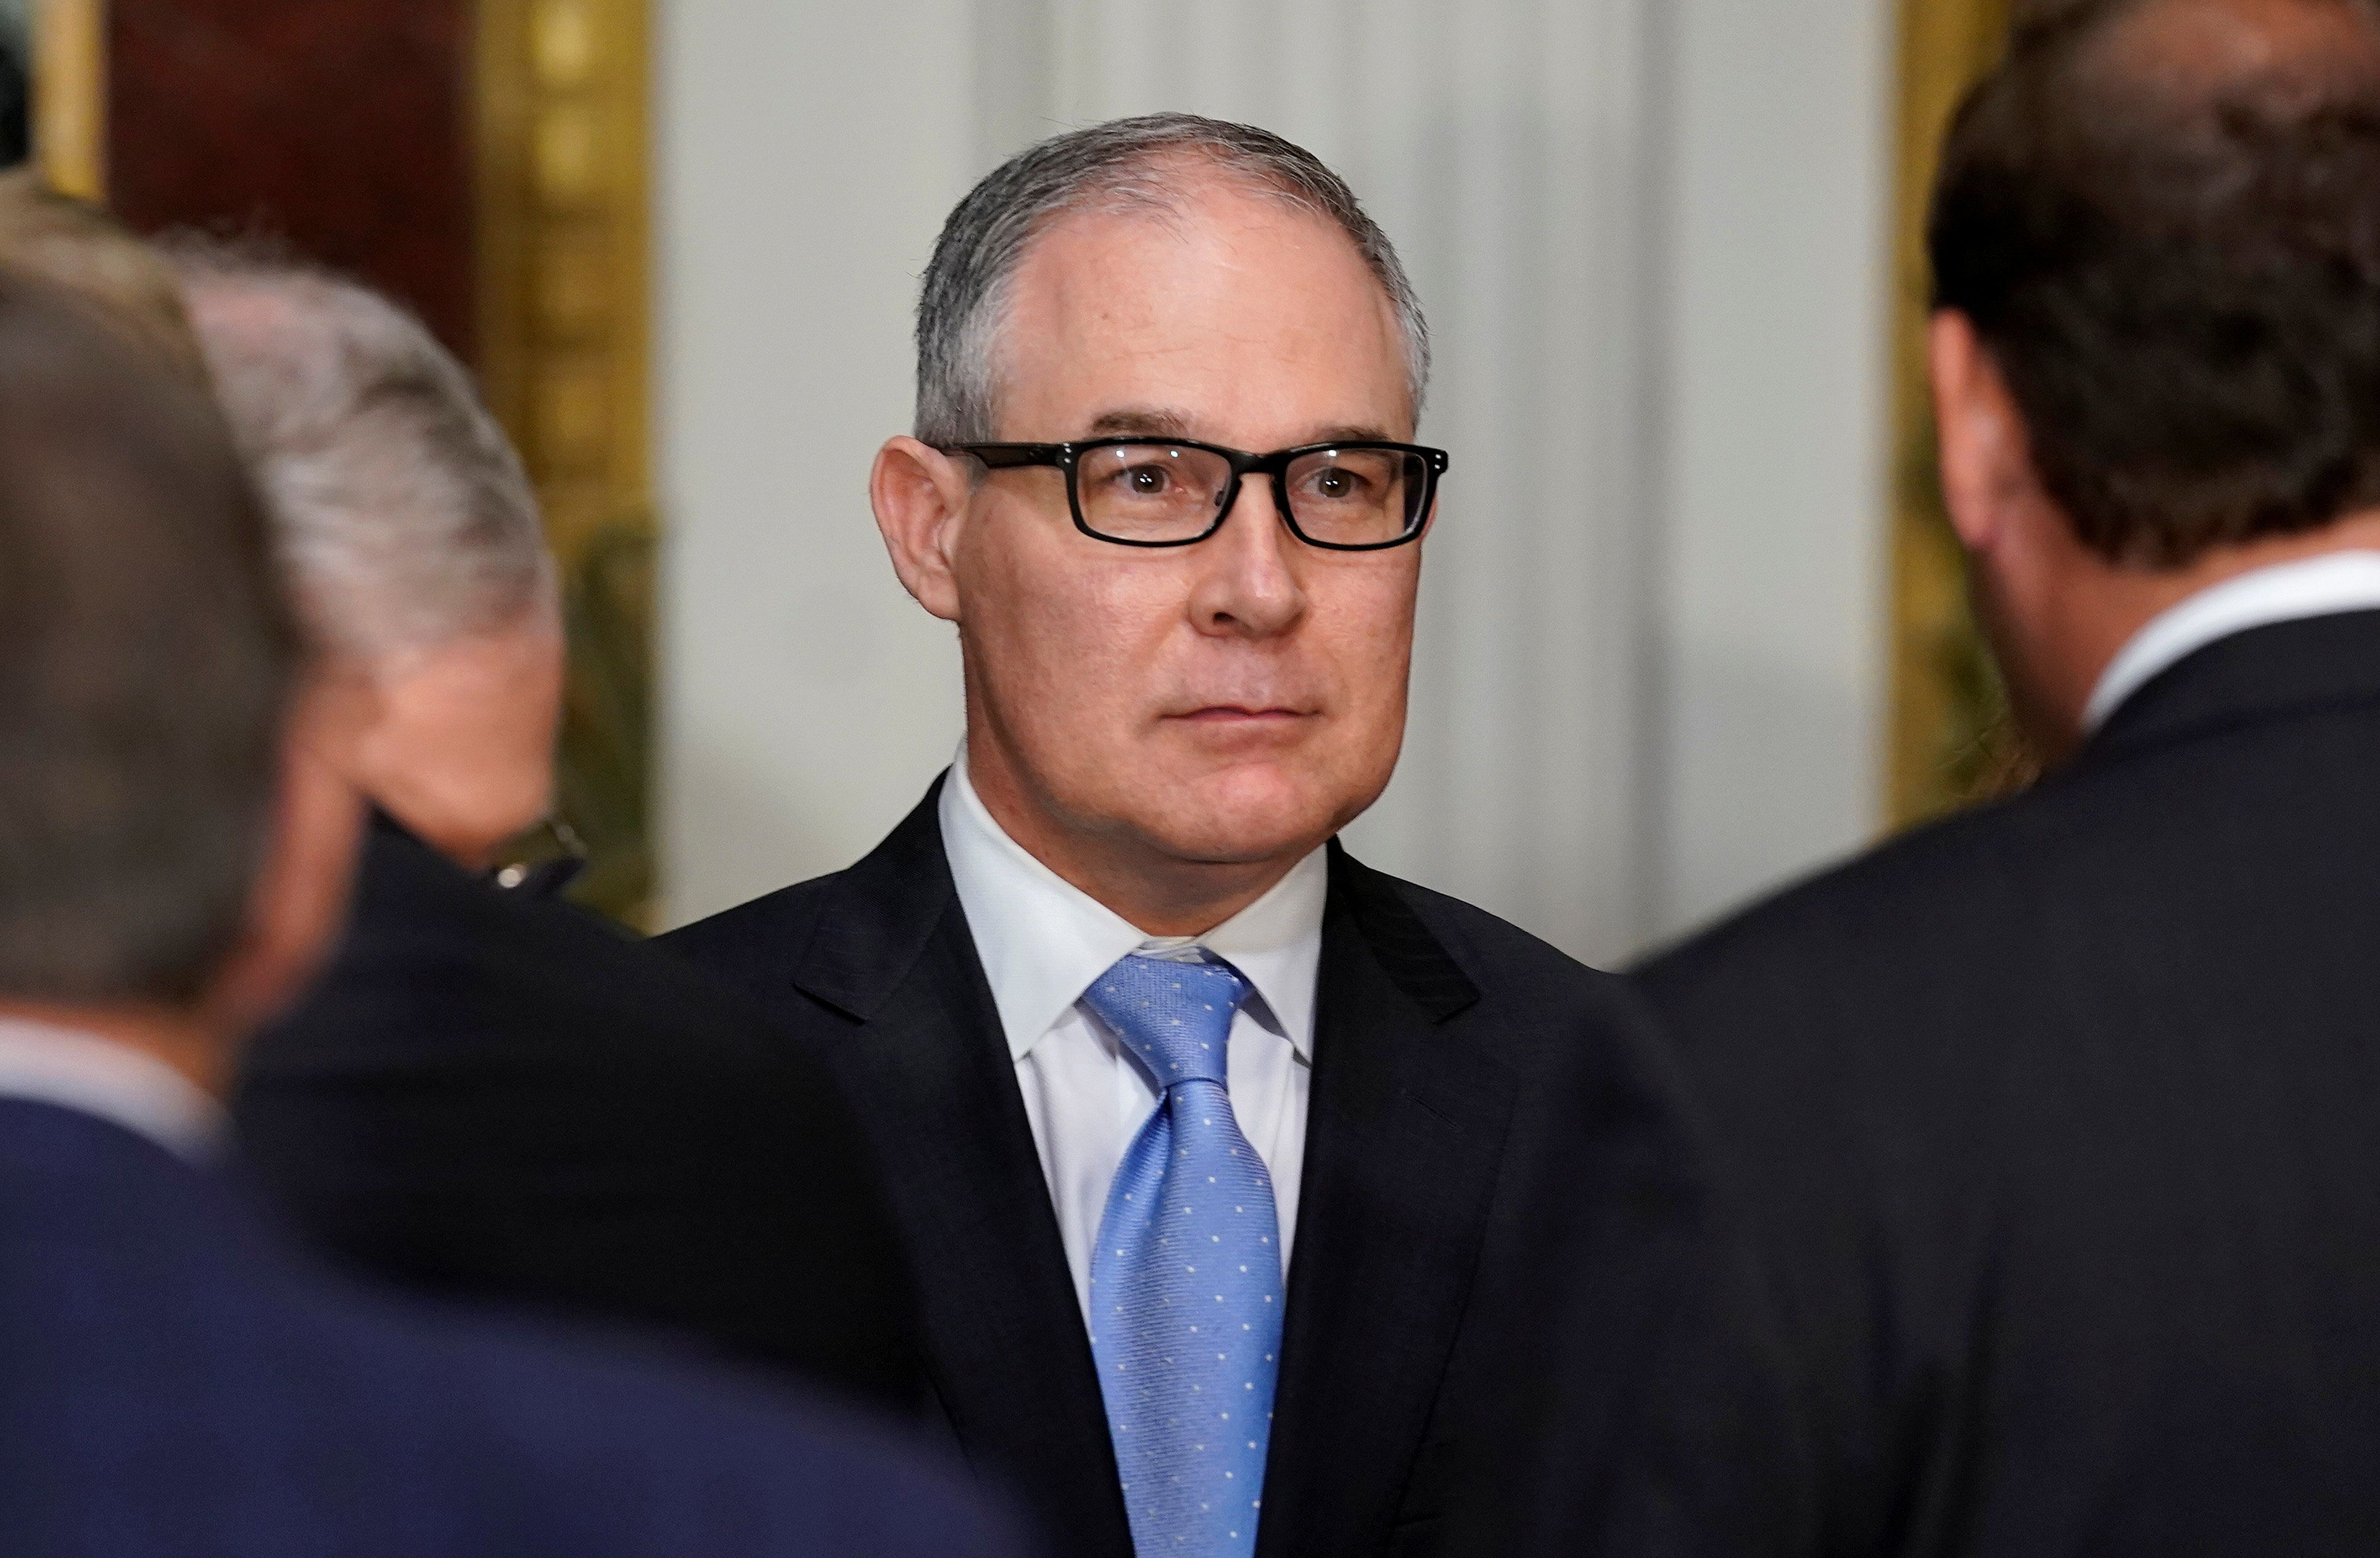 Administrator of the Environmental Protection Agency Scott Pruitt stands after the swearing-in ceremony for US Ambassador to Canada Kelly Knight Craft in Washington, U.S., September 26, 2017.   REUTERS/Joshua Roberts